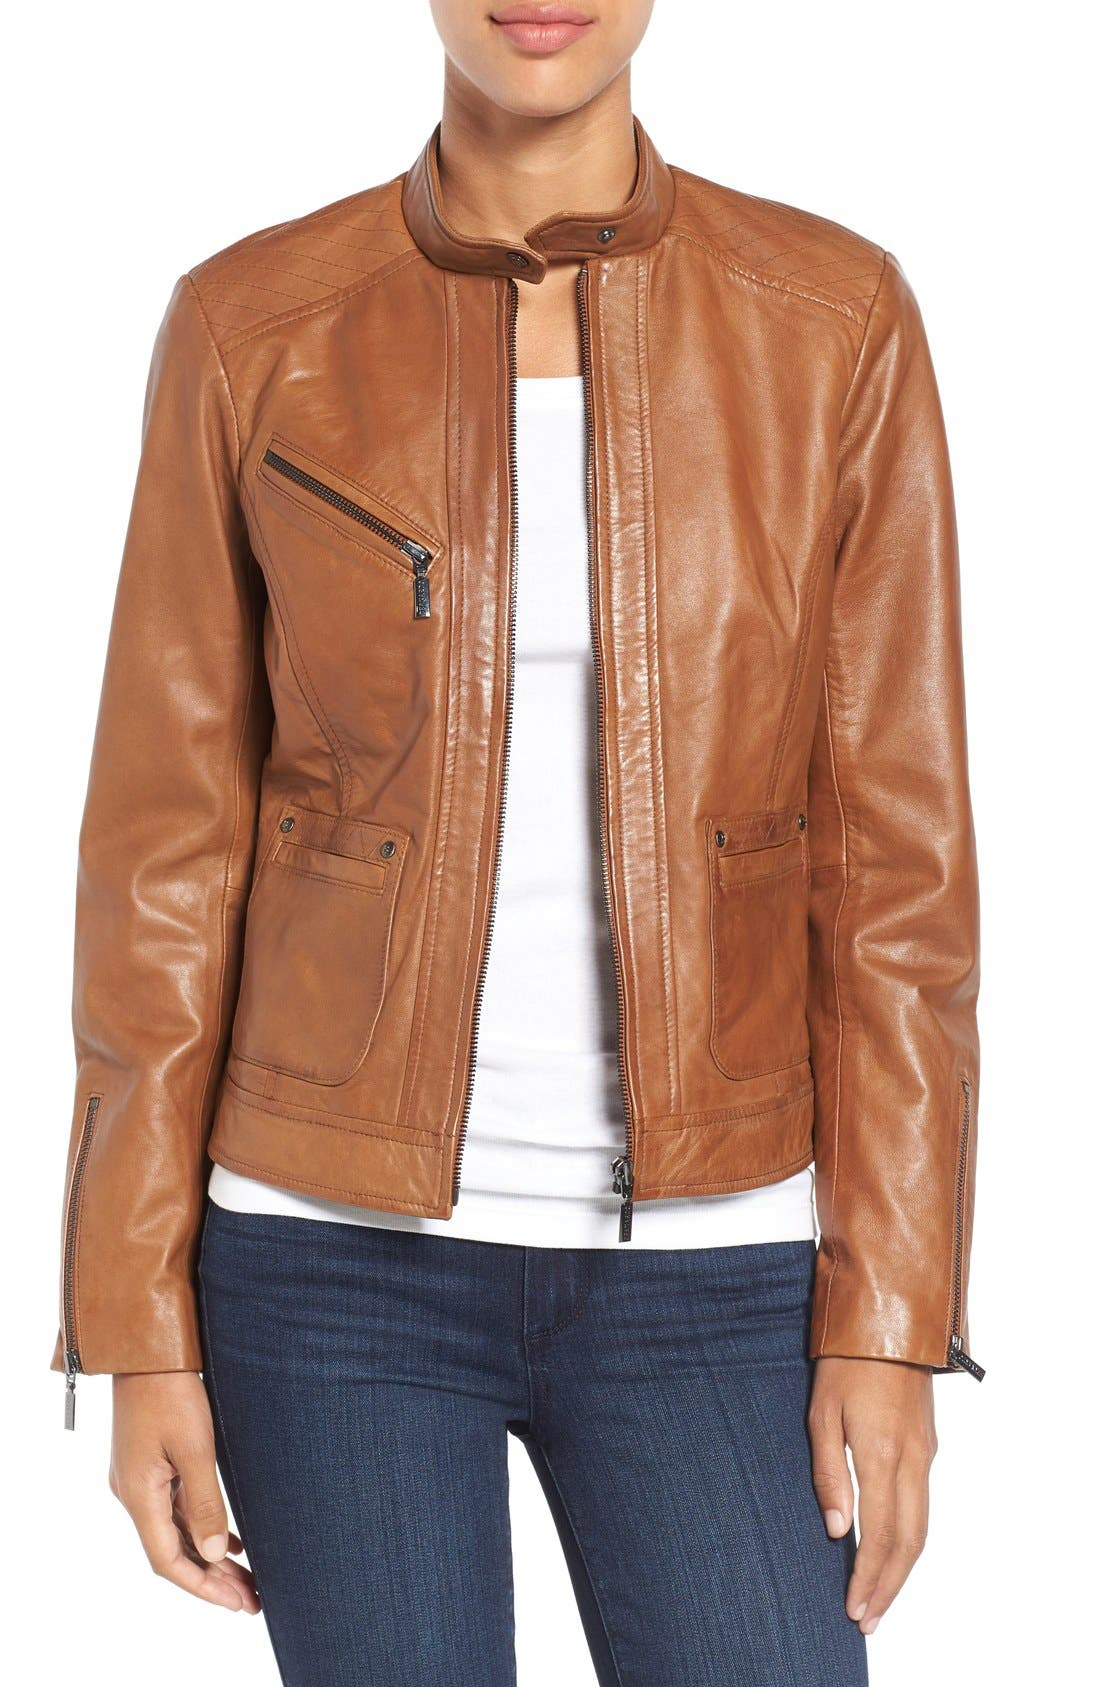 Alternate Image 1 Selected - Bernardo Kirwin Leather Jacket (Regular & Petite)